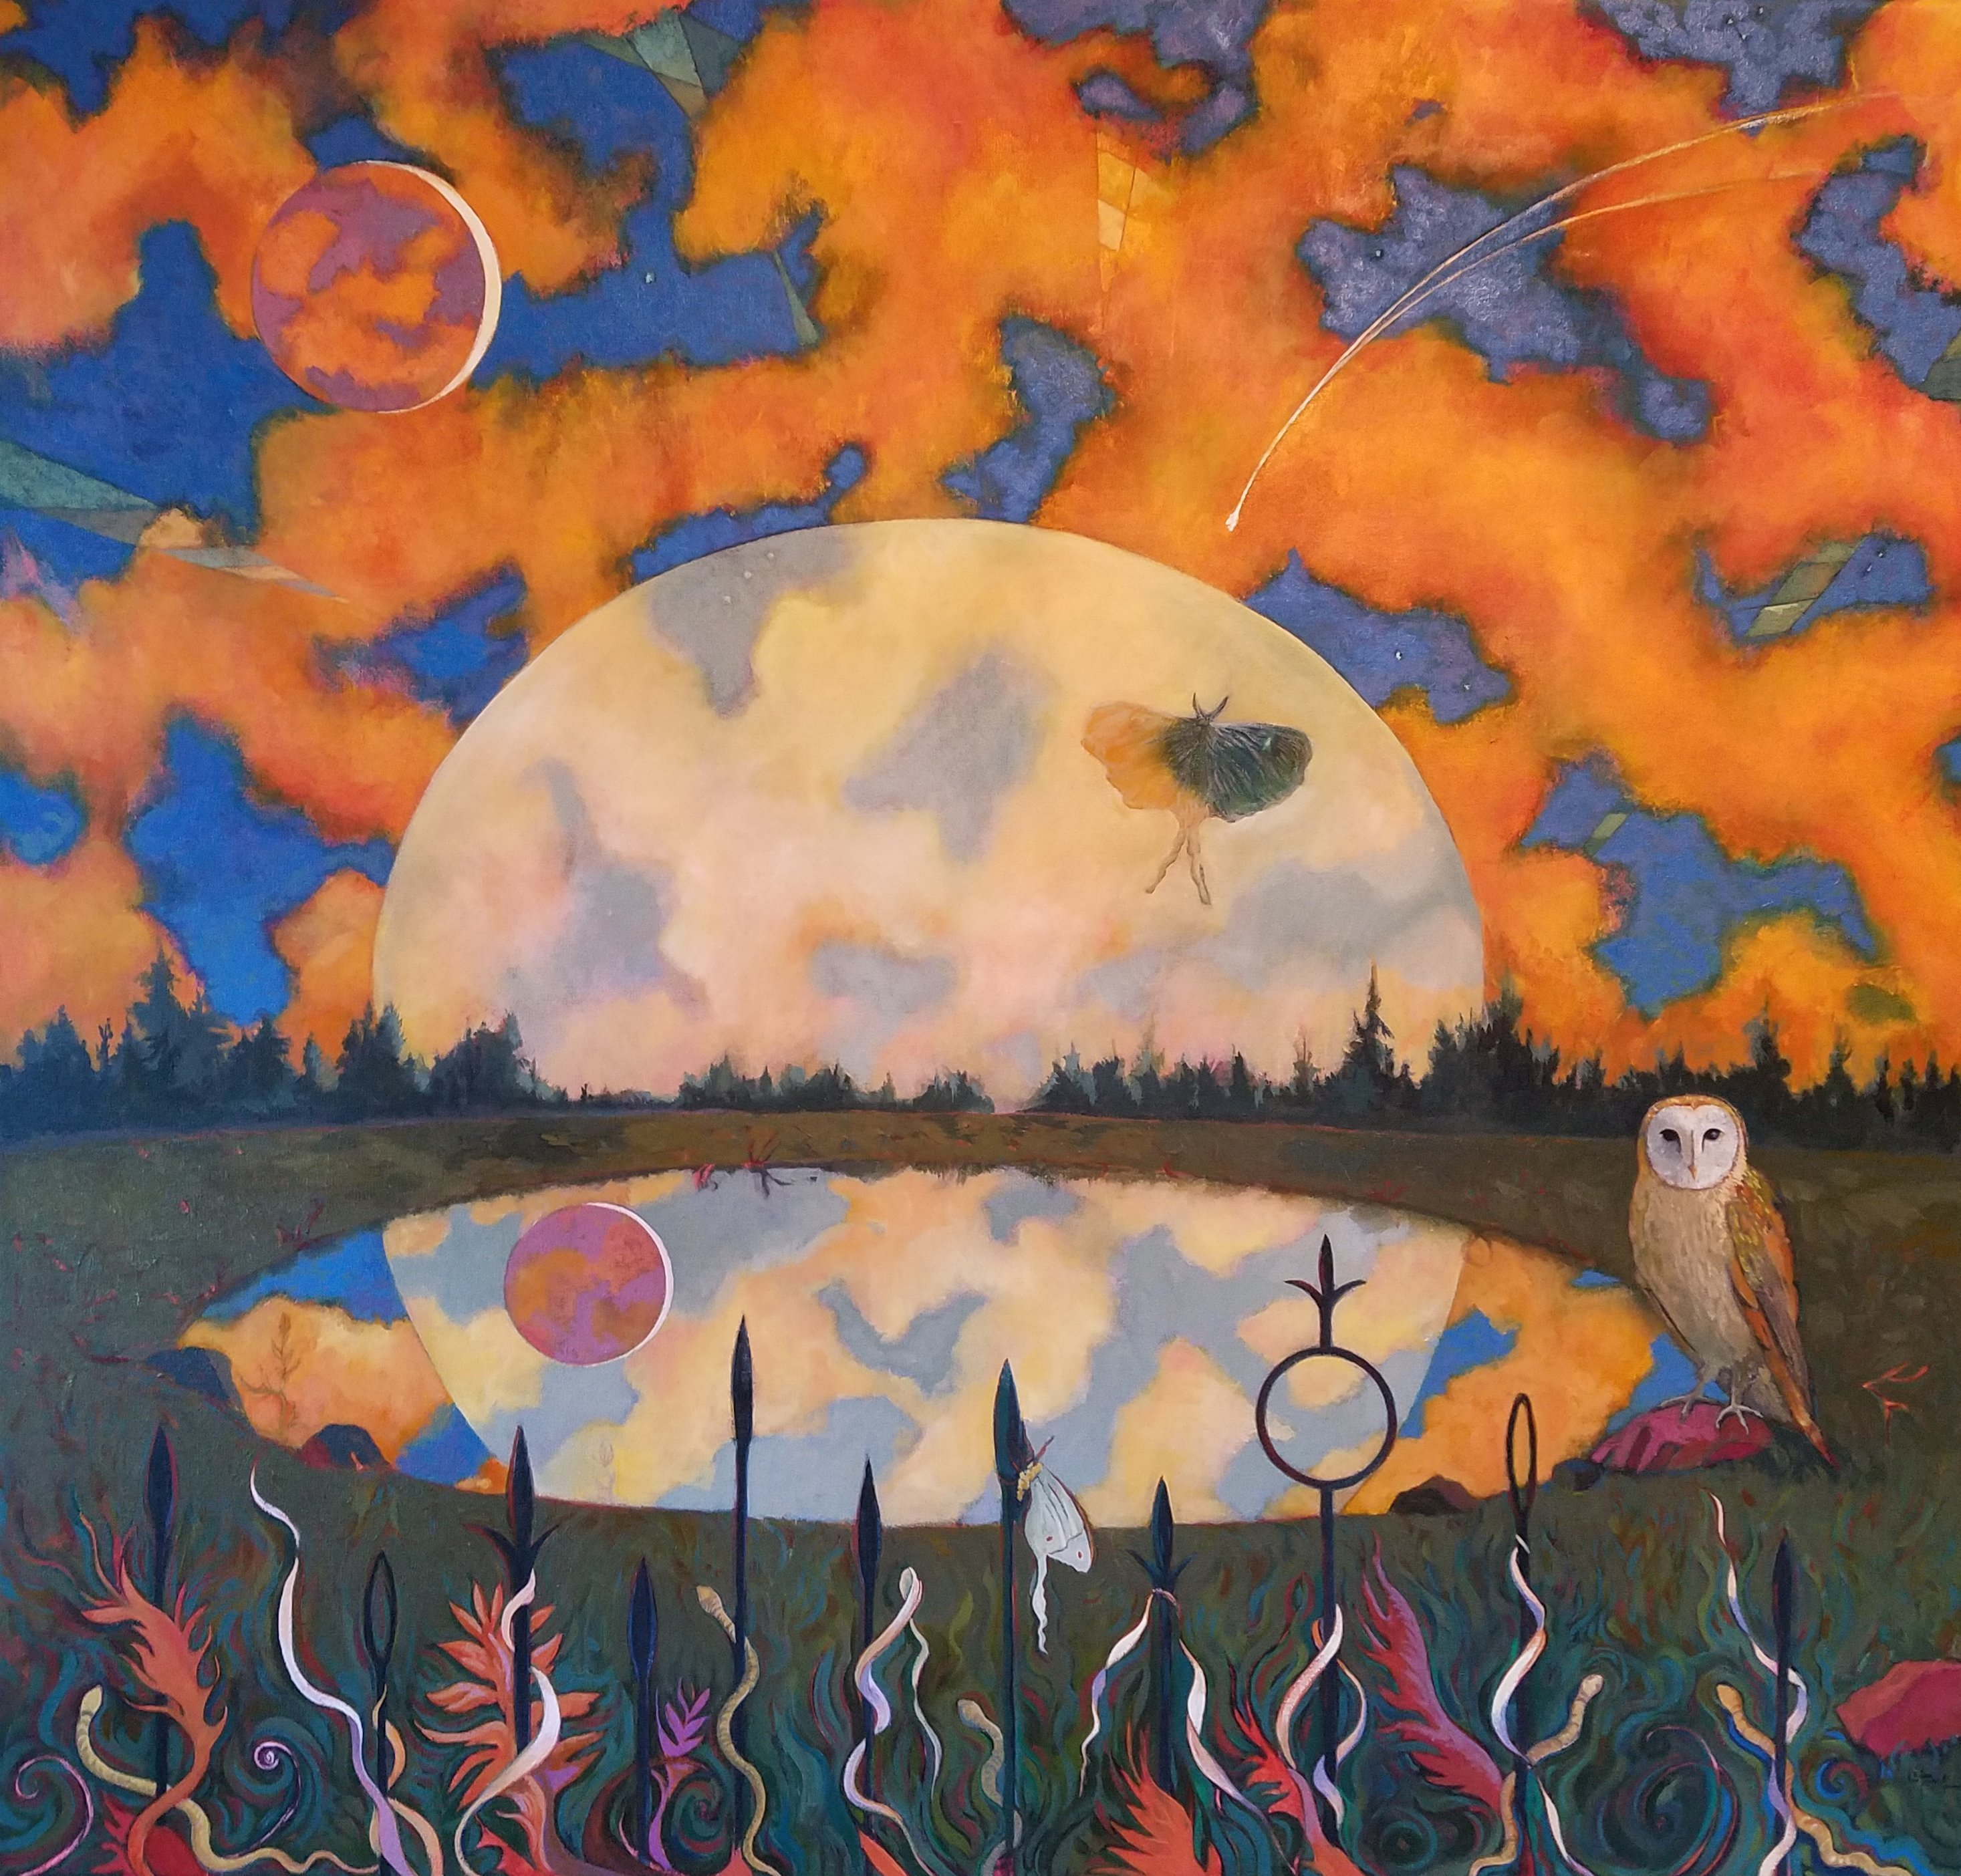 Lauren Litwa; Many New Moons, 2016, Original Painting Oil, 44 x 42 inches. Artwork description: 241 Full Moon with a Blood Moon with Owl and Orange Sky...